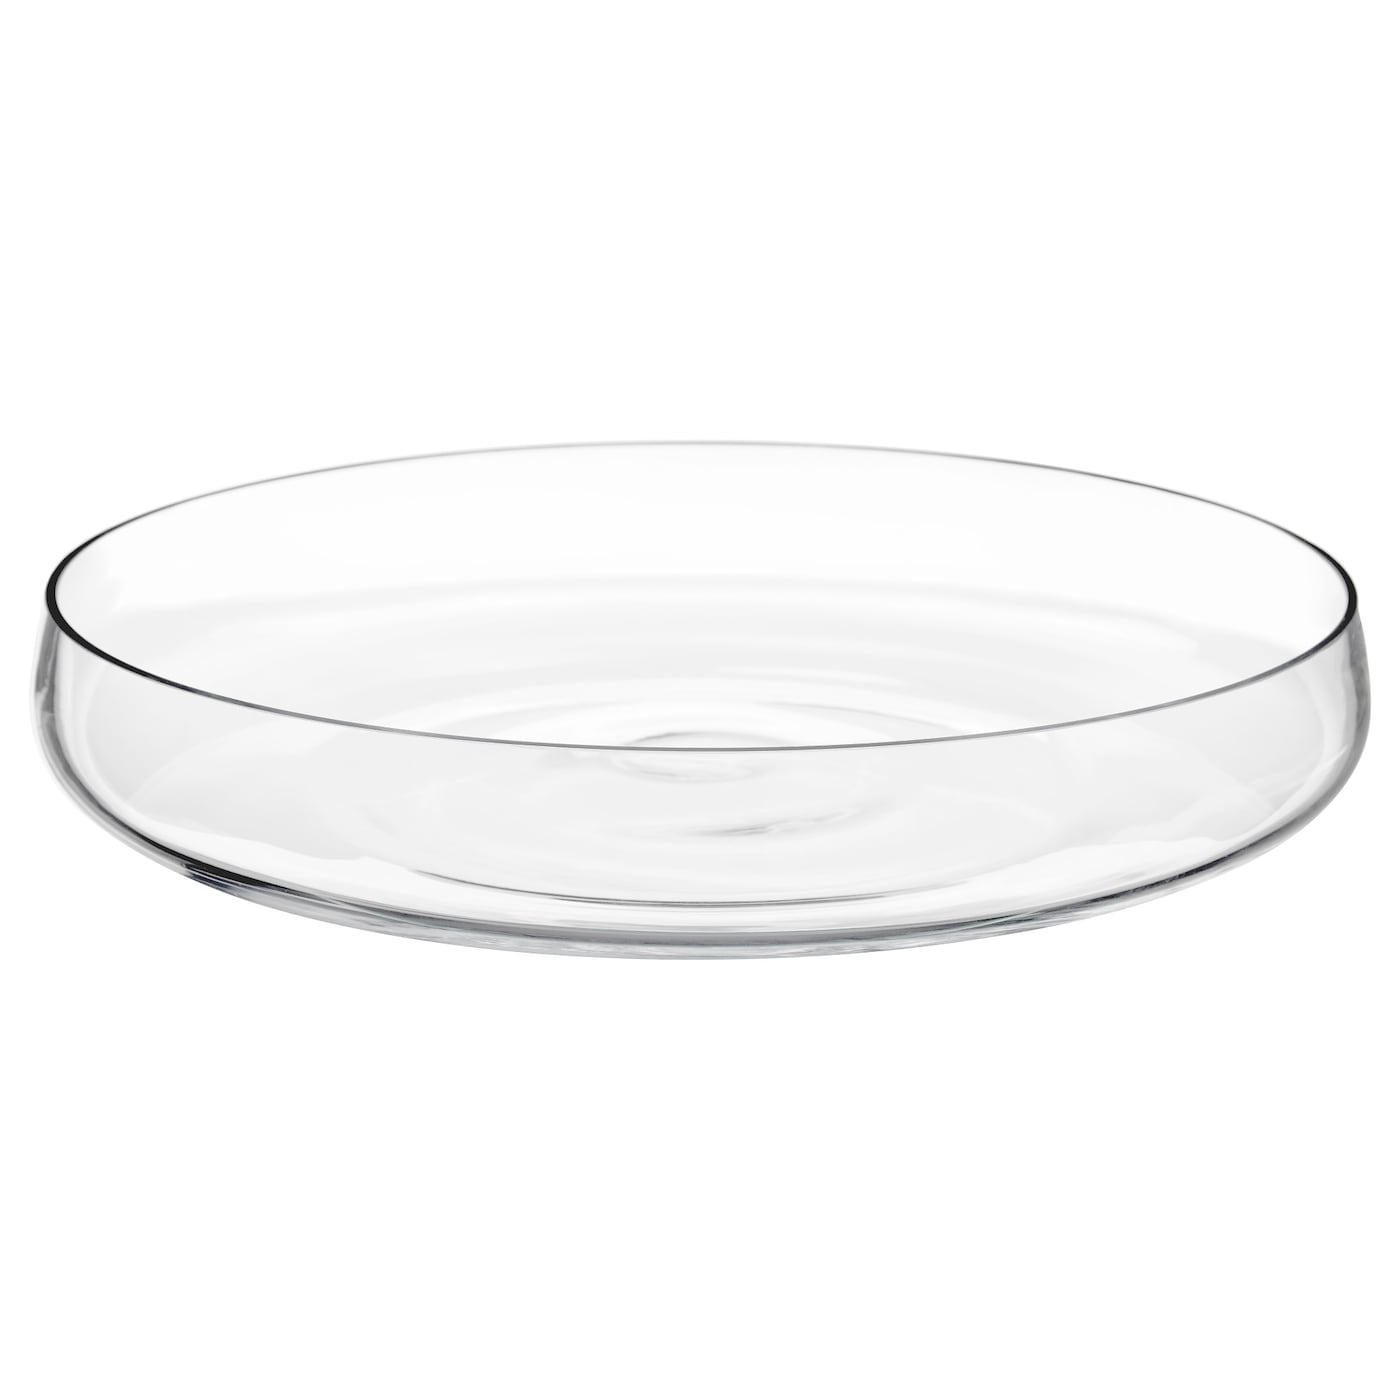 IKEA BERÄKNA bowl The glass bowl is mouth blown by a skilled craftsperson.